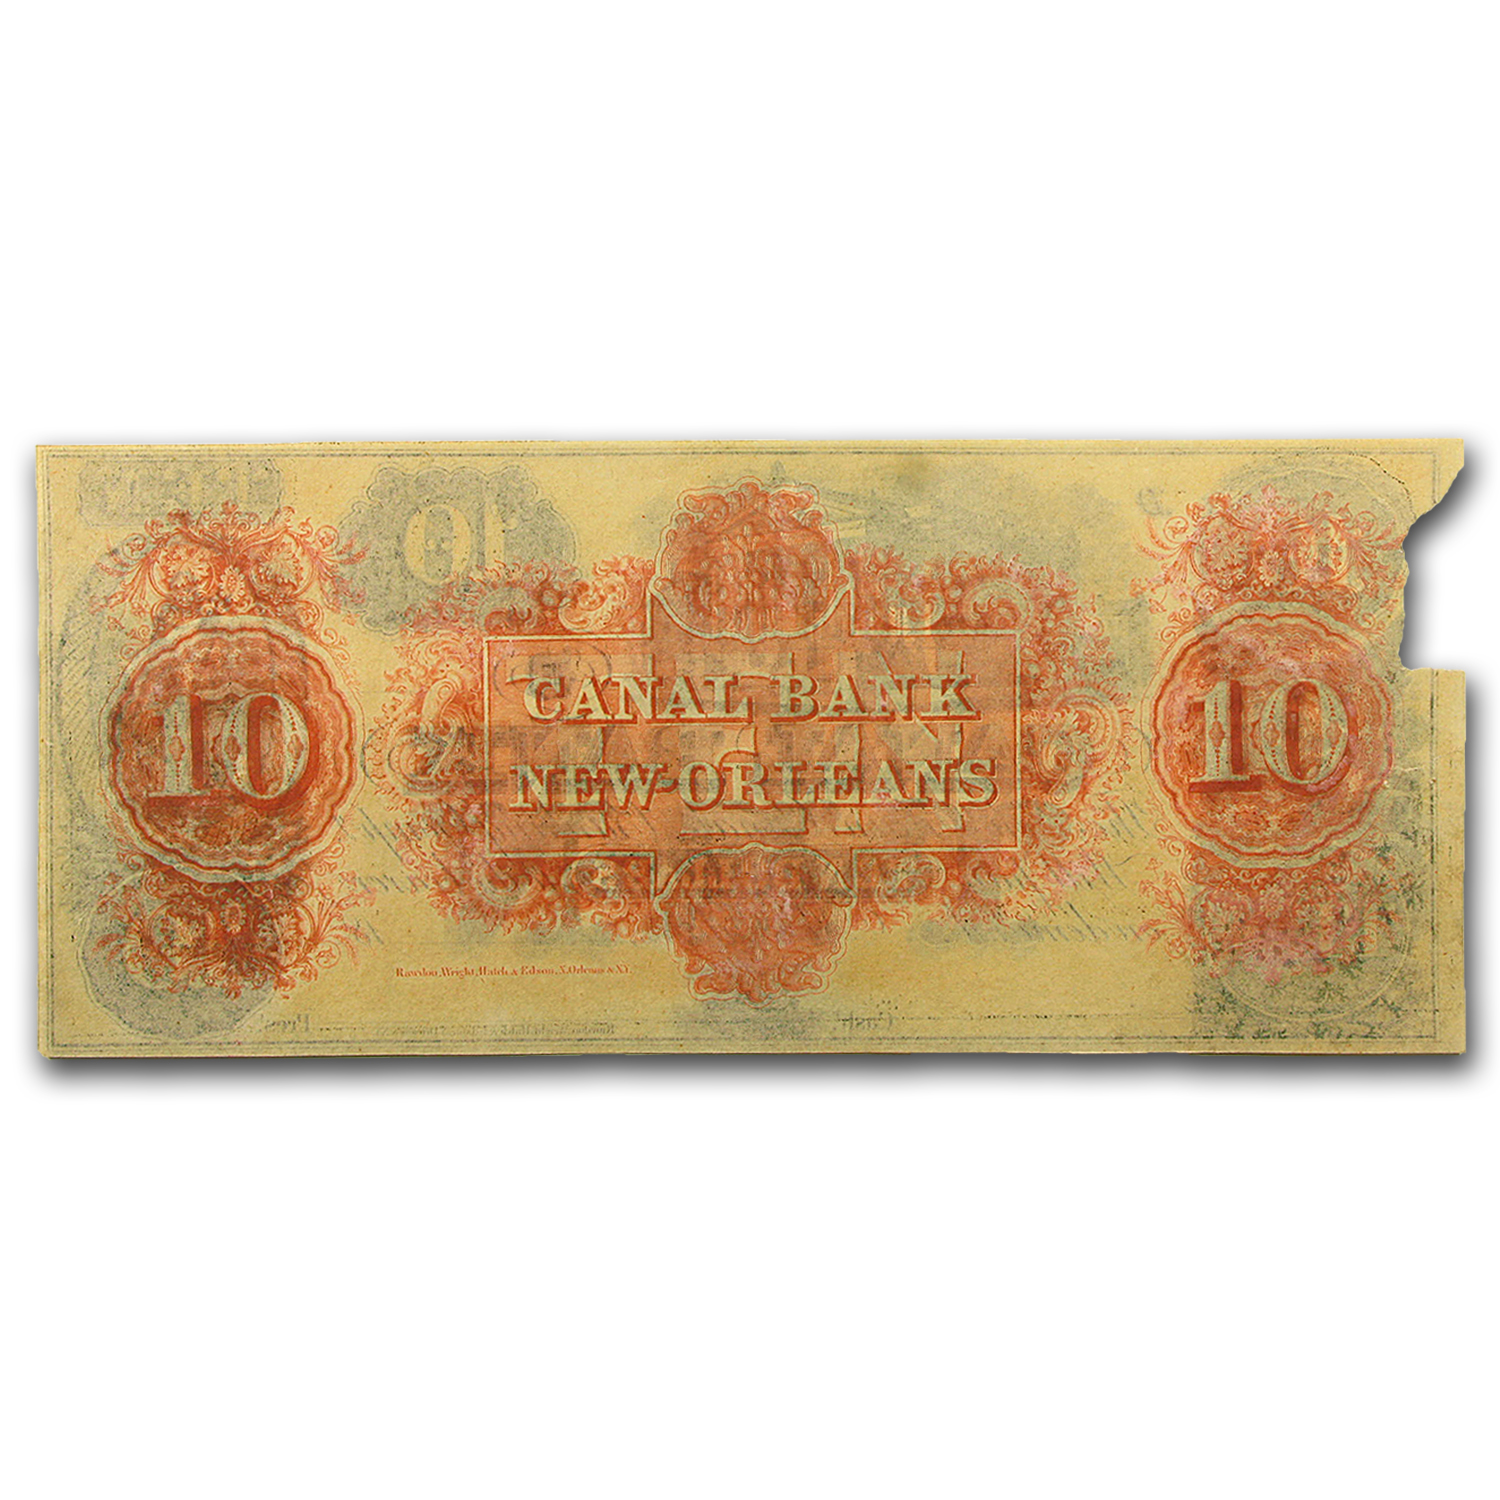 18__ Canal Bank of New Orleans $10 Note LA-105 Crisp Unc